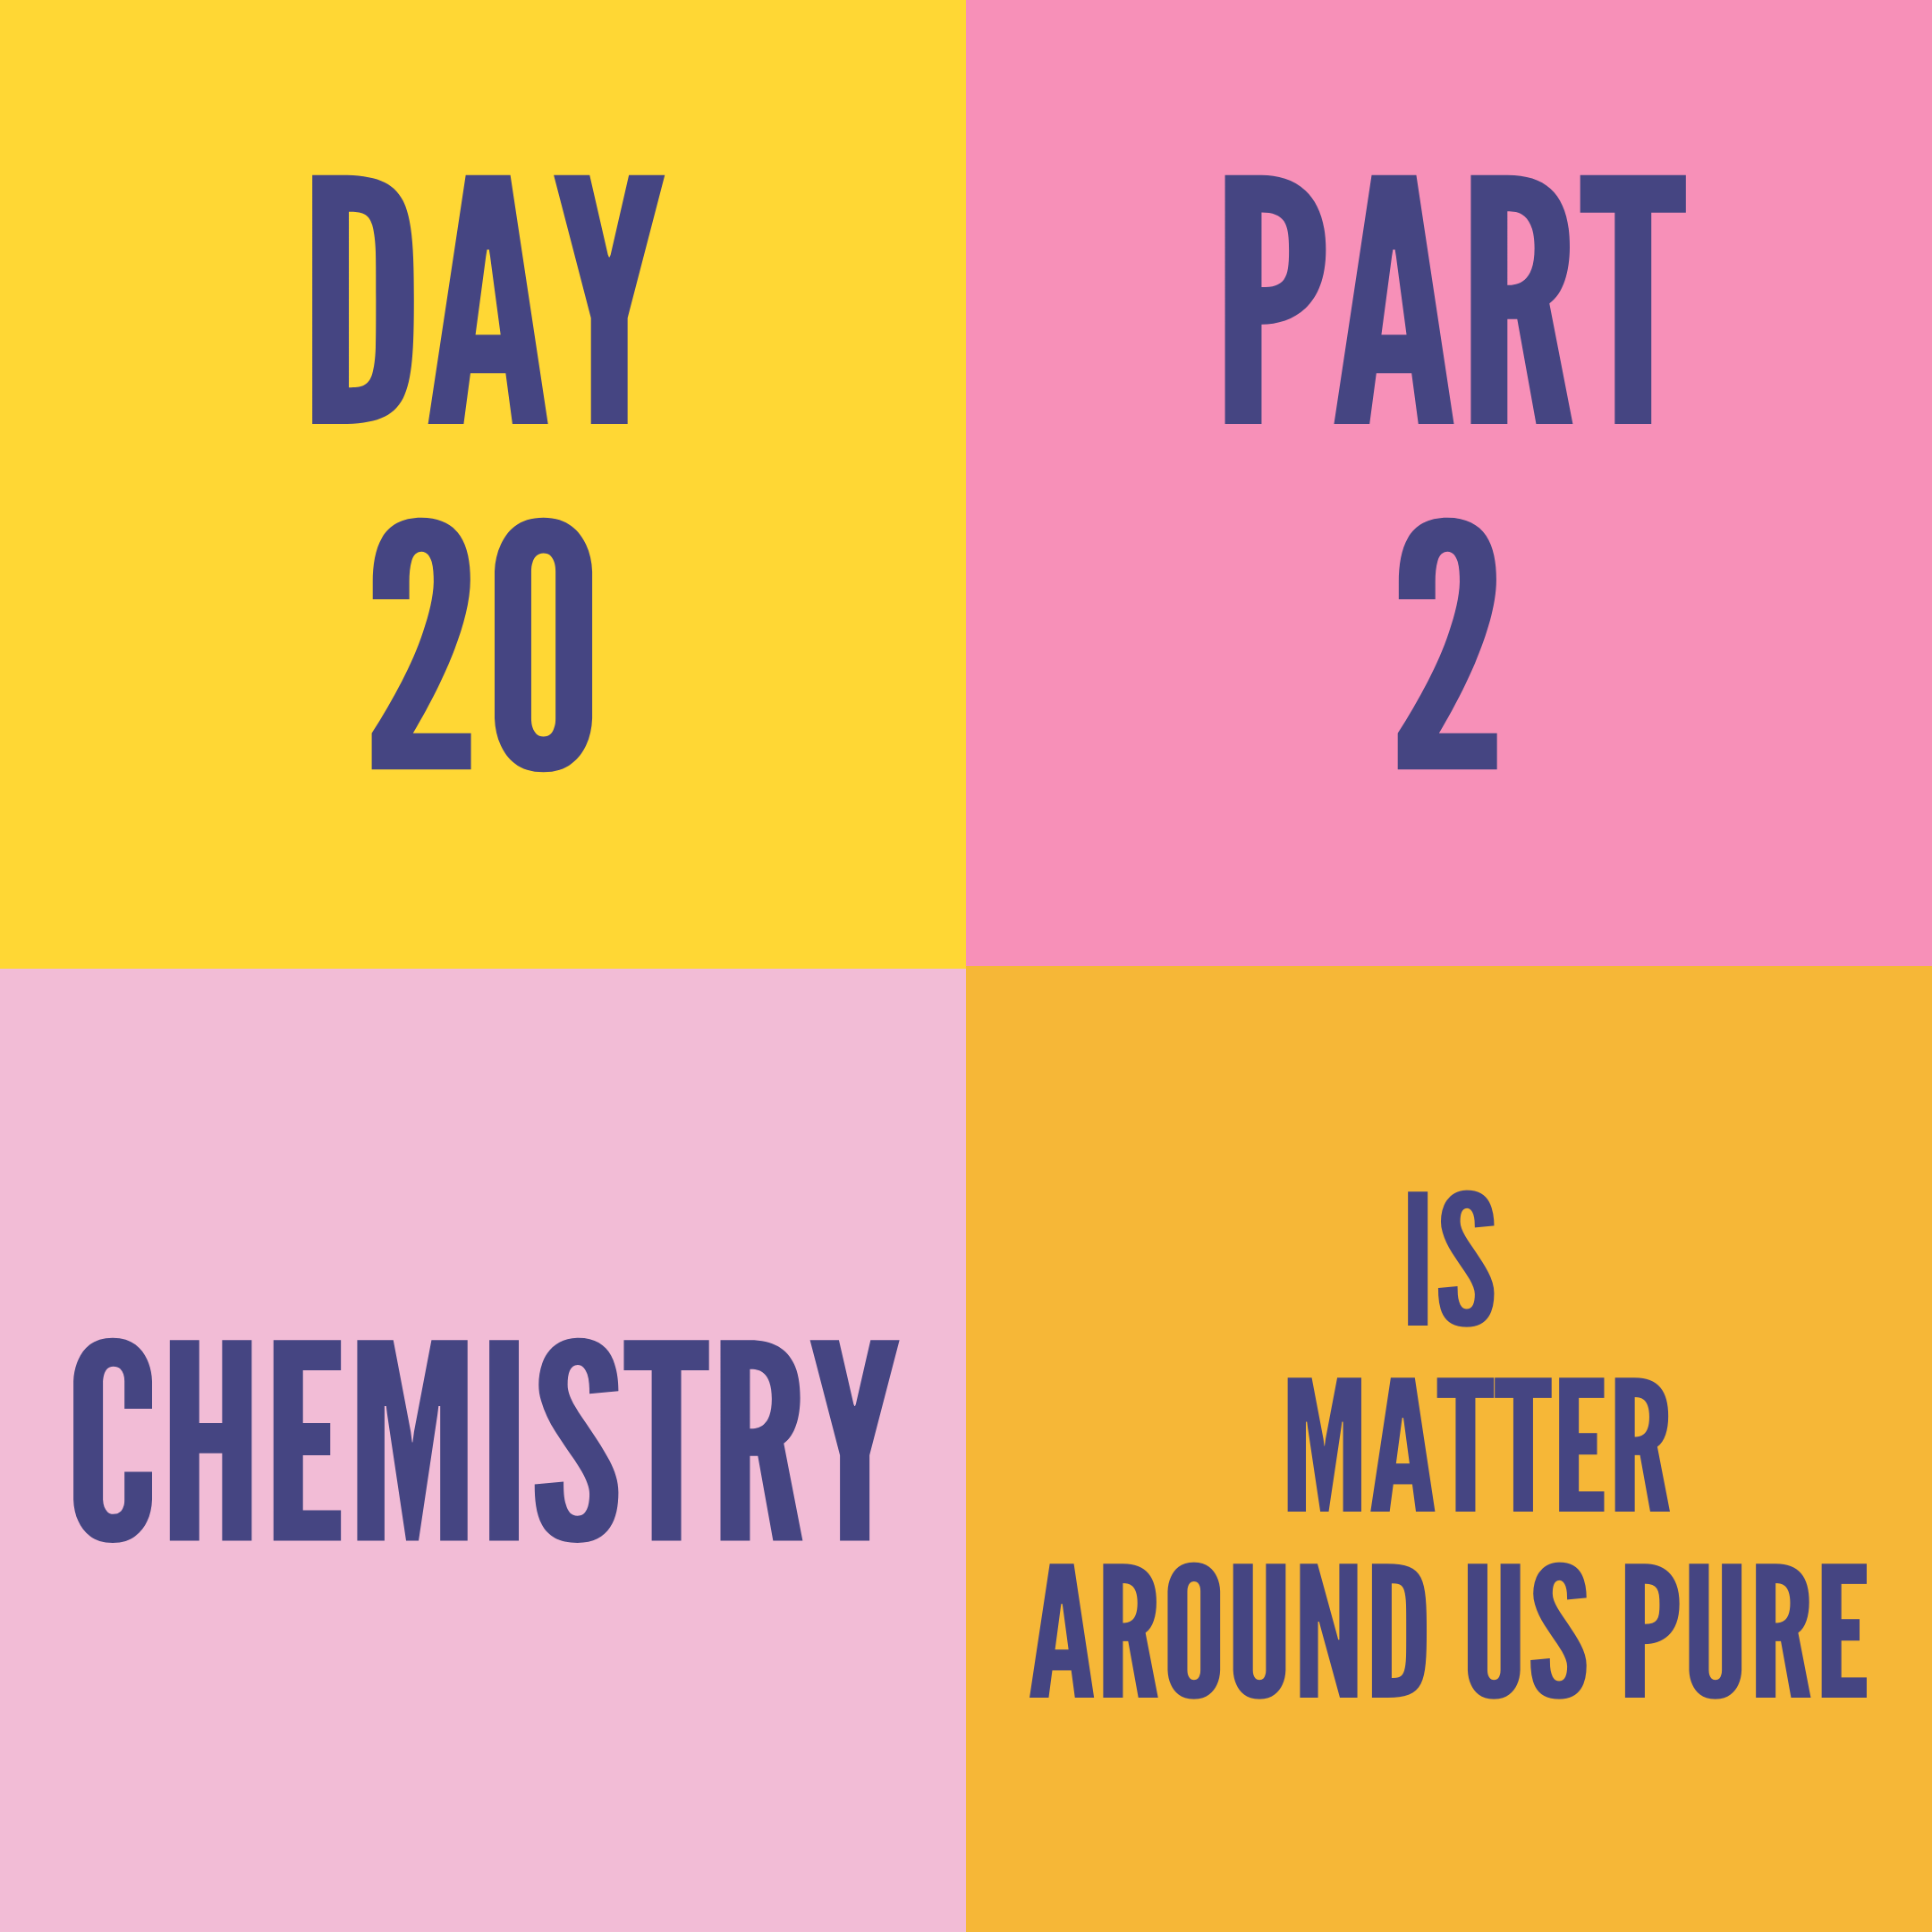 DAY-20 PART-2 IS MATTER AROUND US PURE